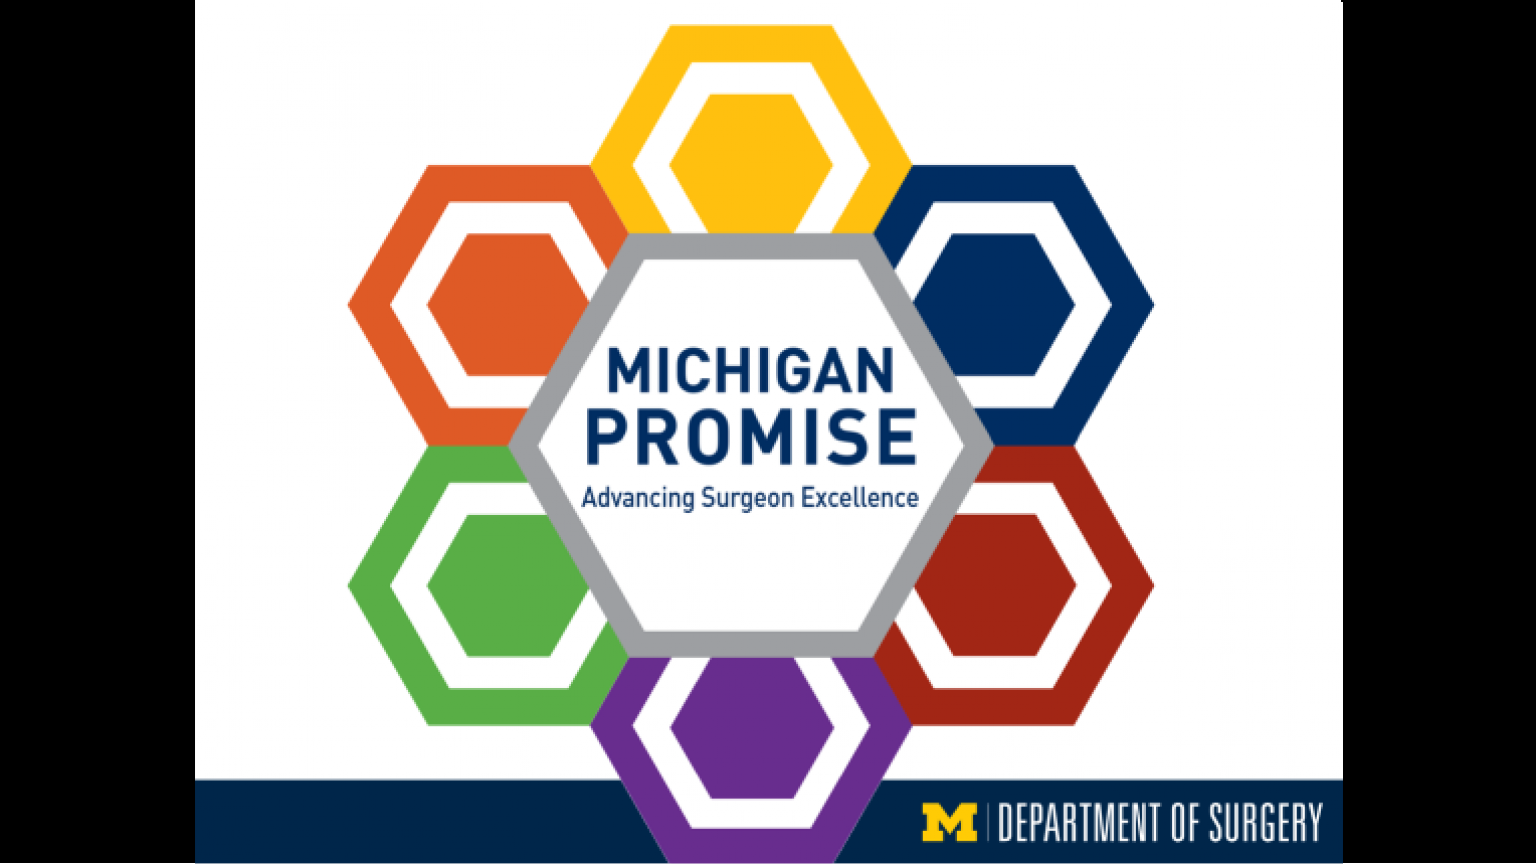 """The Michigan Promise graphic - first slide of """"This Is What We Stand For"""" presentation"""